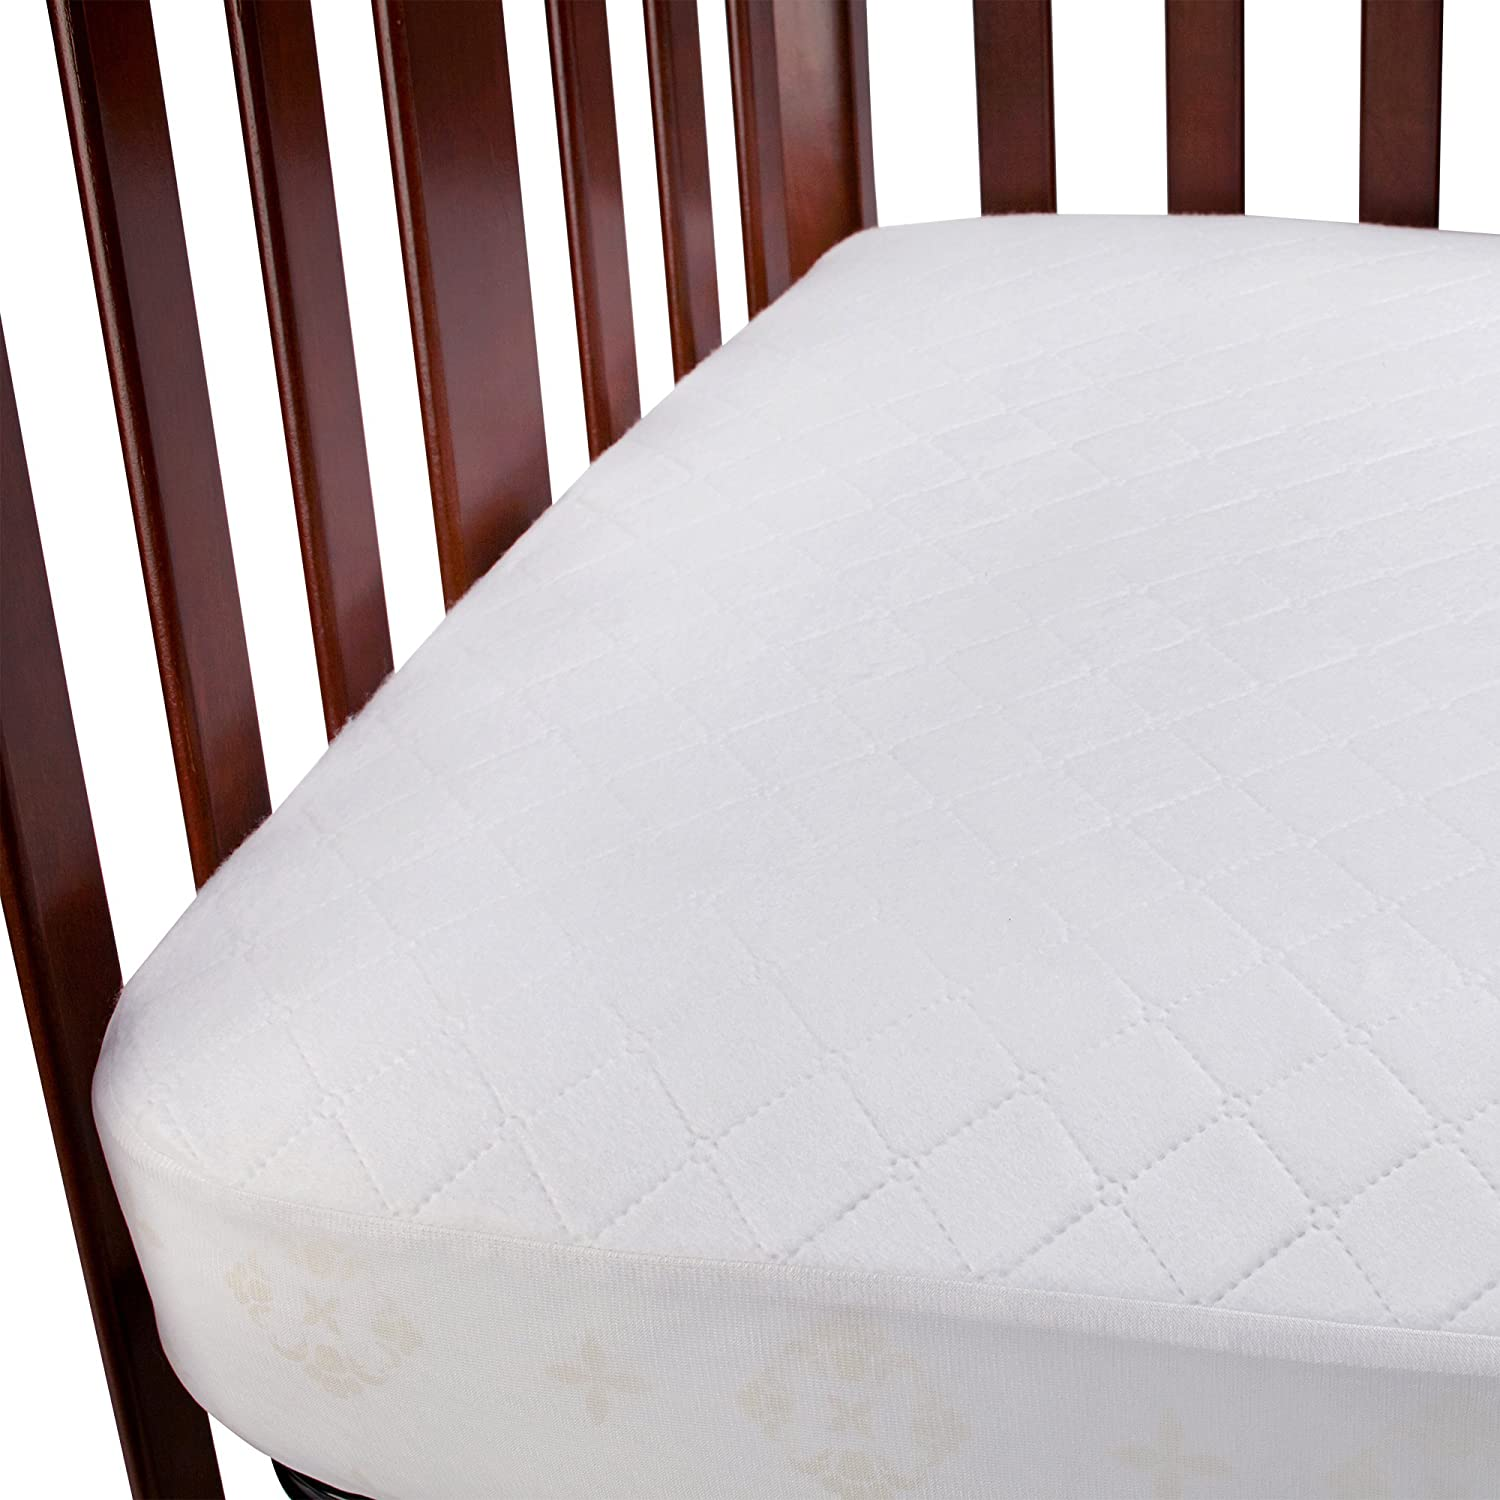 Amazon.com: Carters 2-Pack Waterproof Fitted Crib Mattress Pad, White: Baby